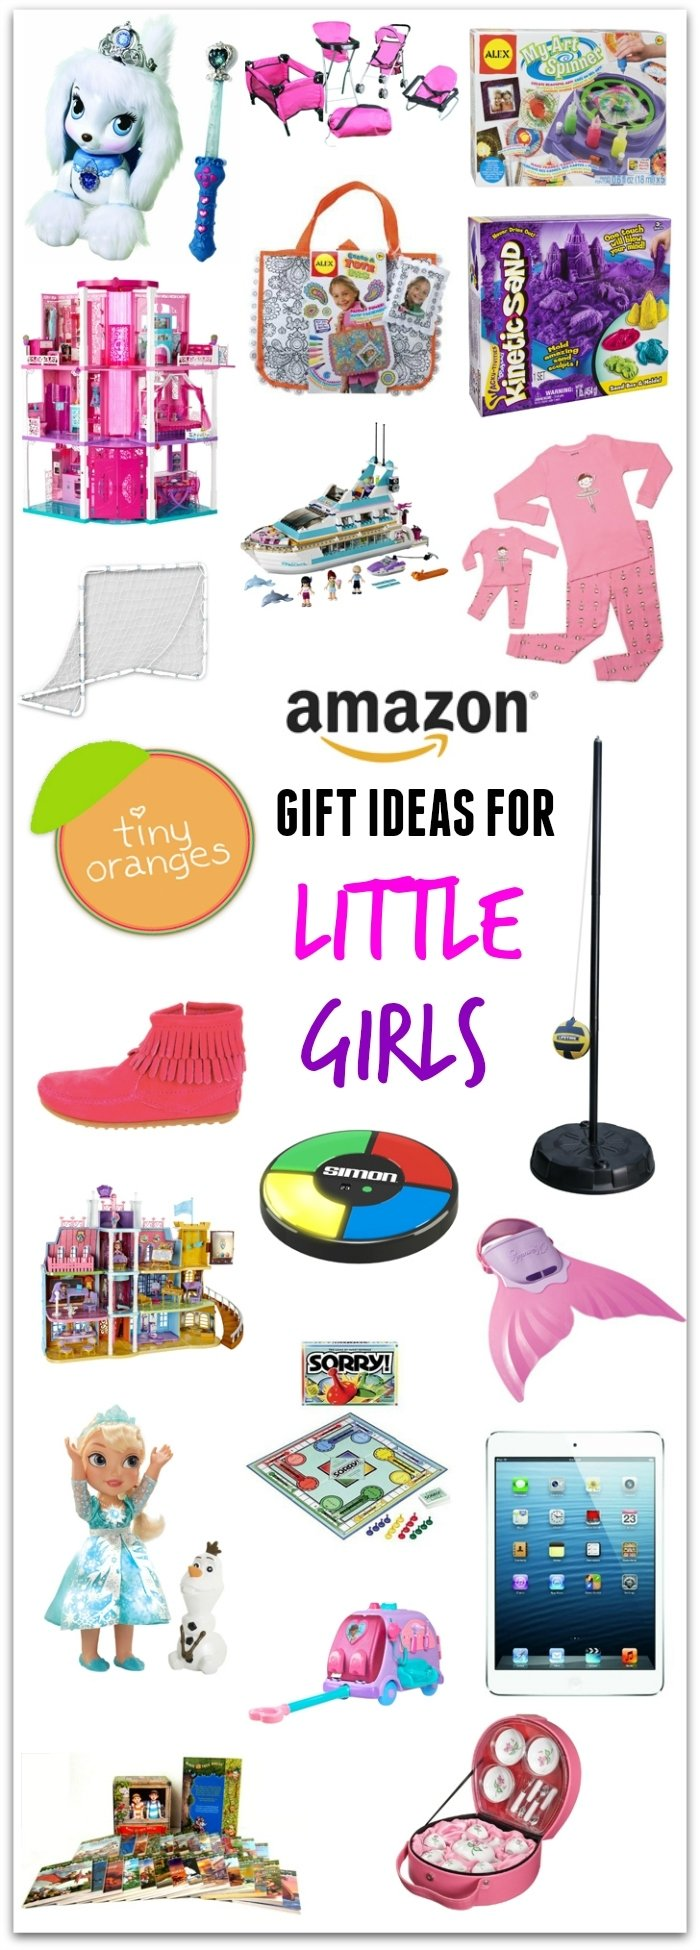 10 Stunning Gift Ideas For Little Girls holiday gift ideas for little girls 1 2020